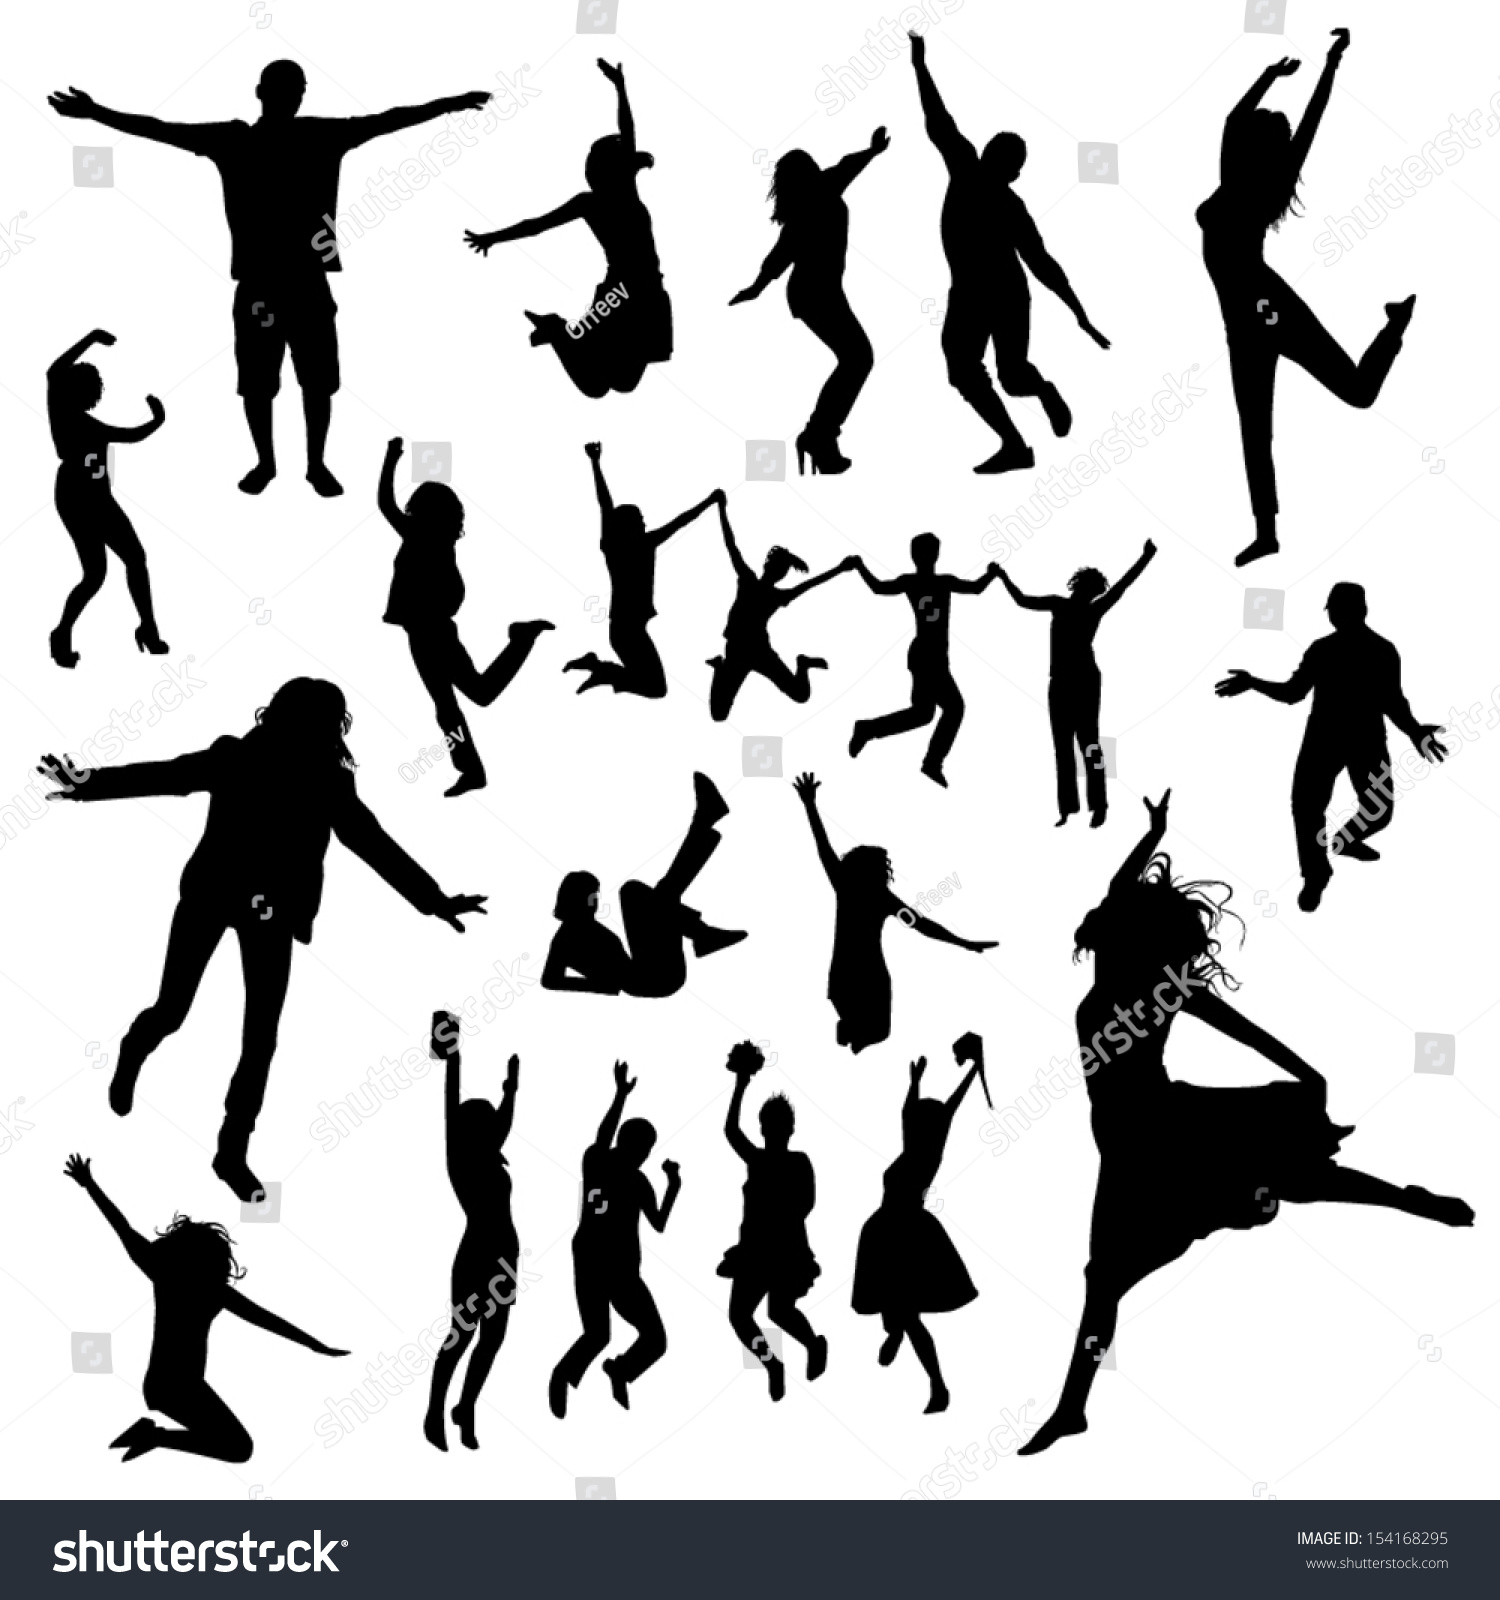 People jumping silhouette